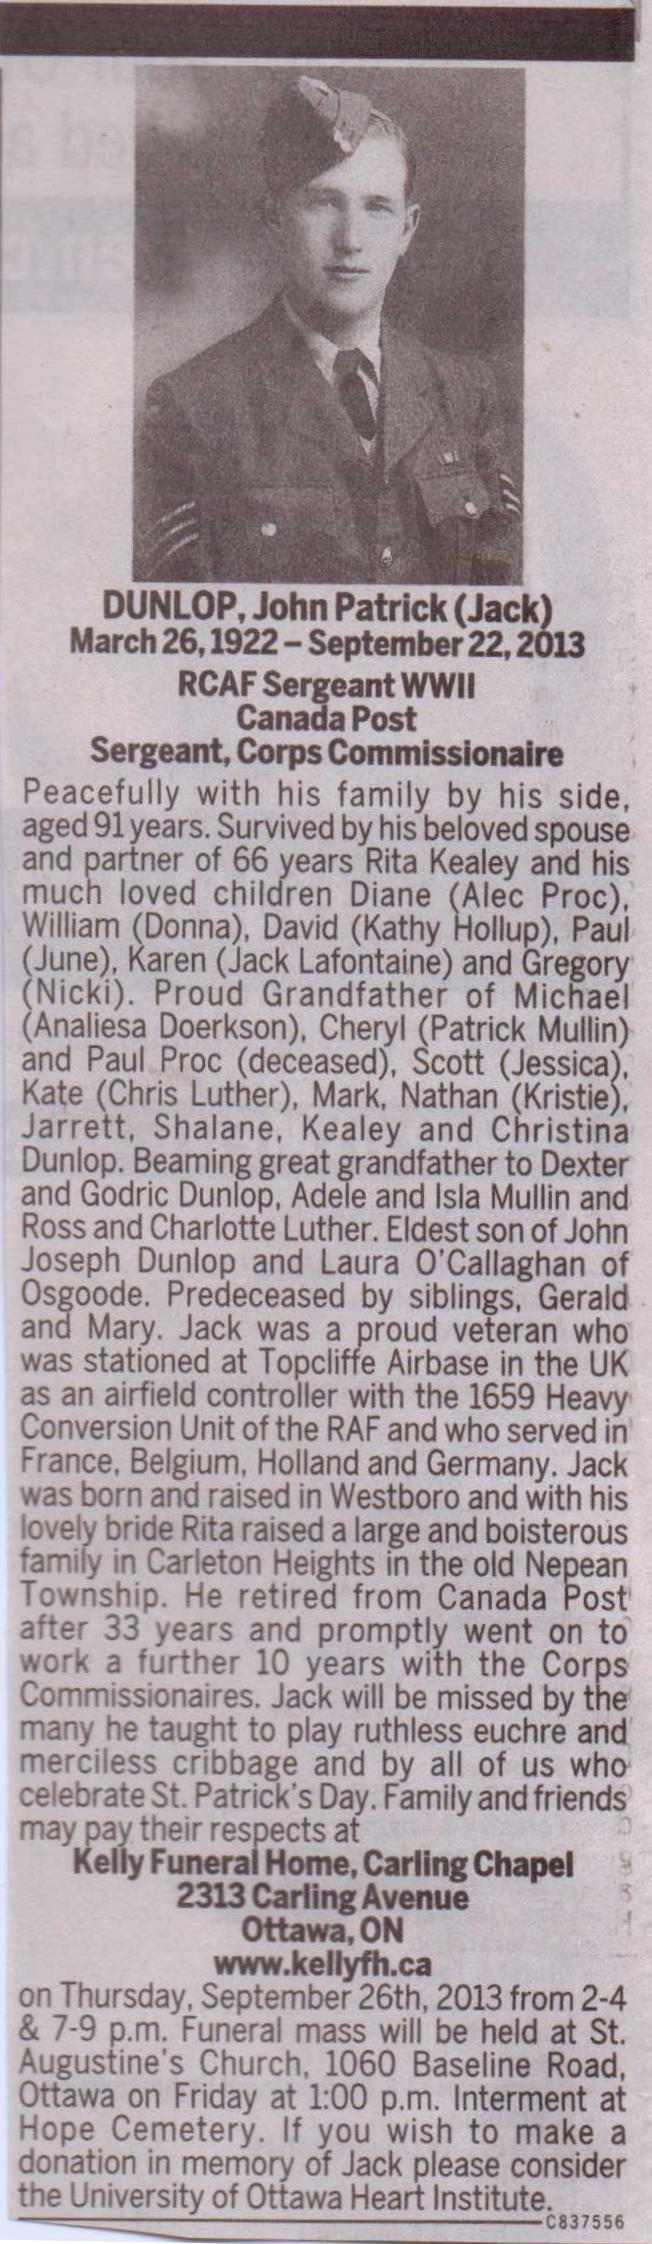 Obituary for Mr. John (Jack) Dunlop